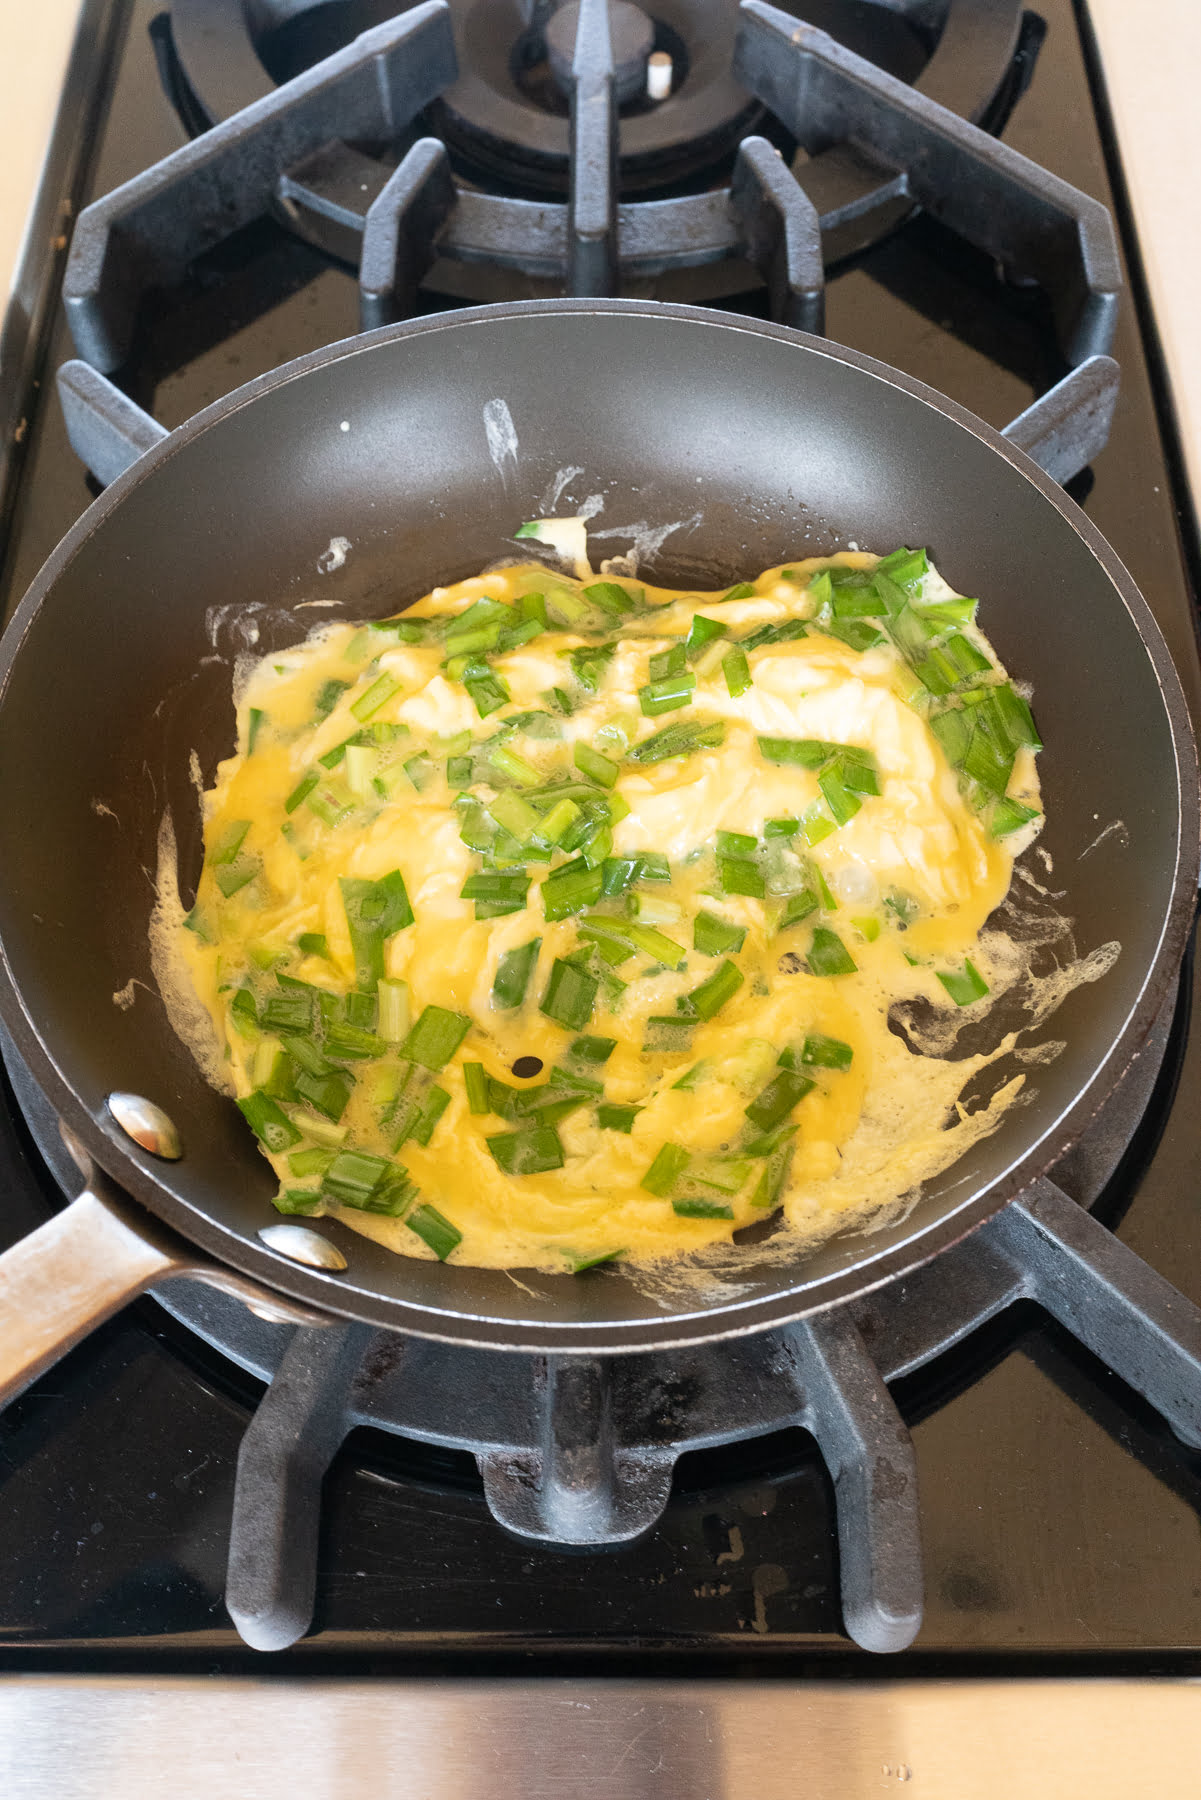 Scrambling together the chive and eggs in a pan.